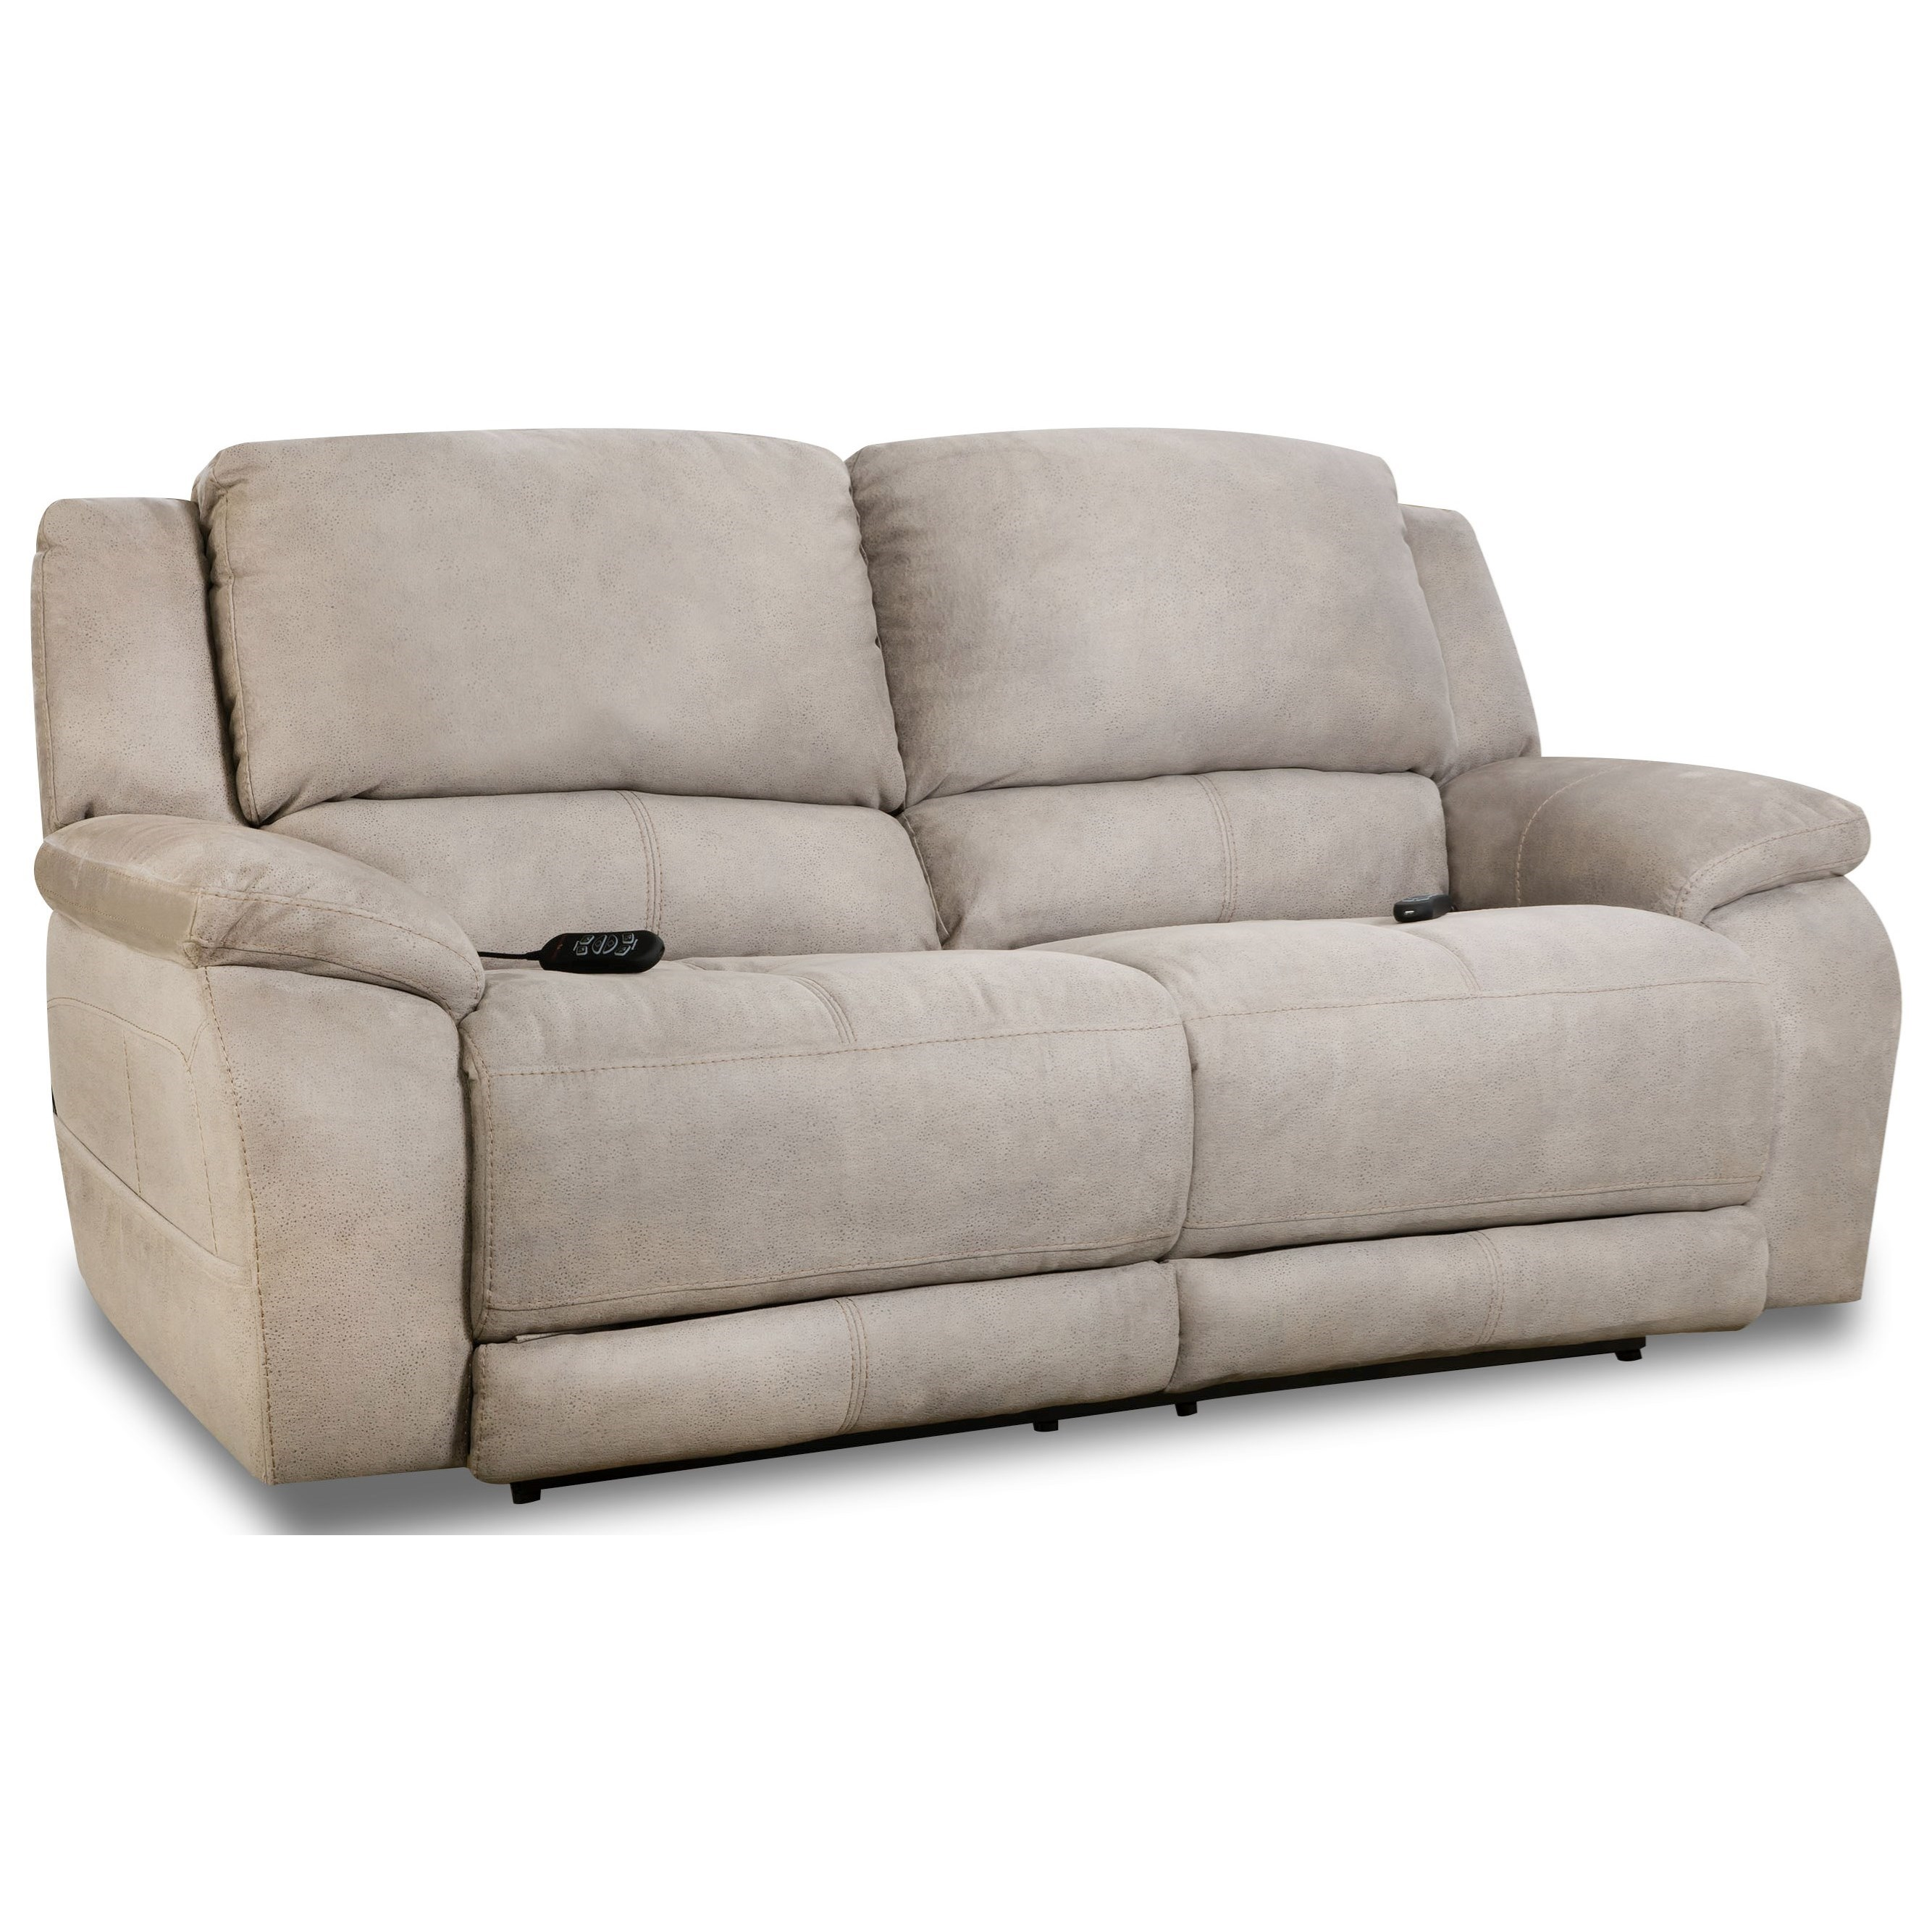 Explorer Double Reclining Power Sofa by HomeStretch at Furniture Fair - North Carolina